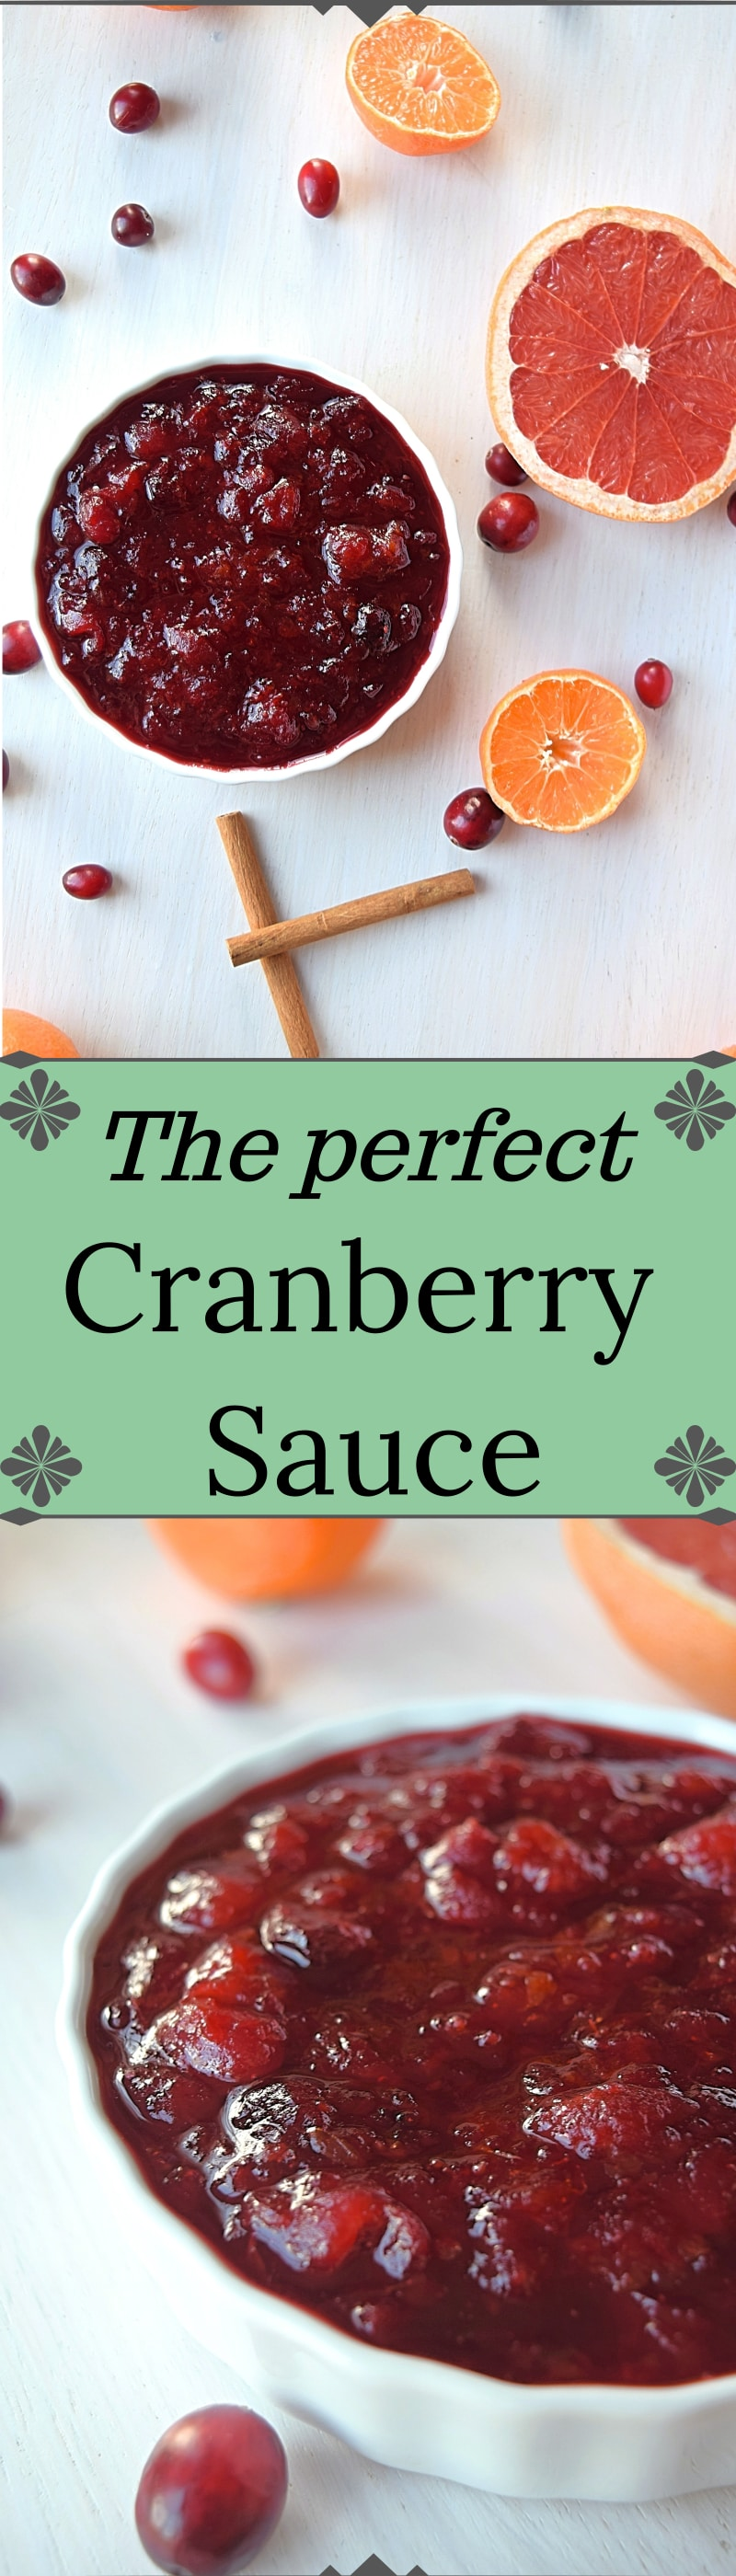 The perfect Cranberry sauce